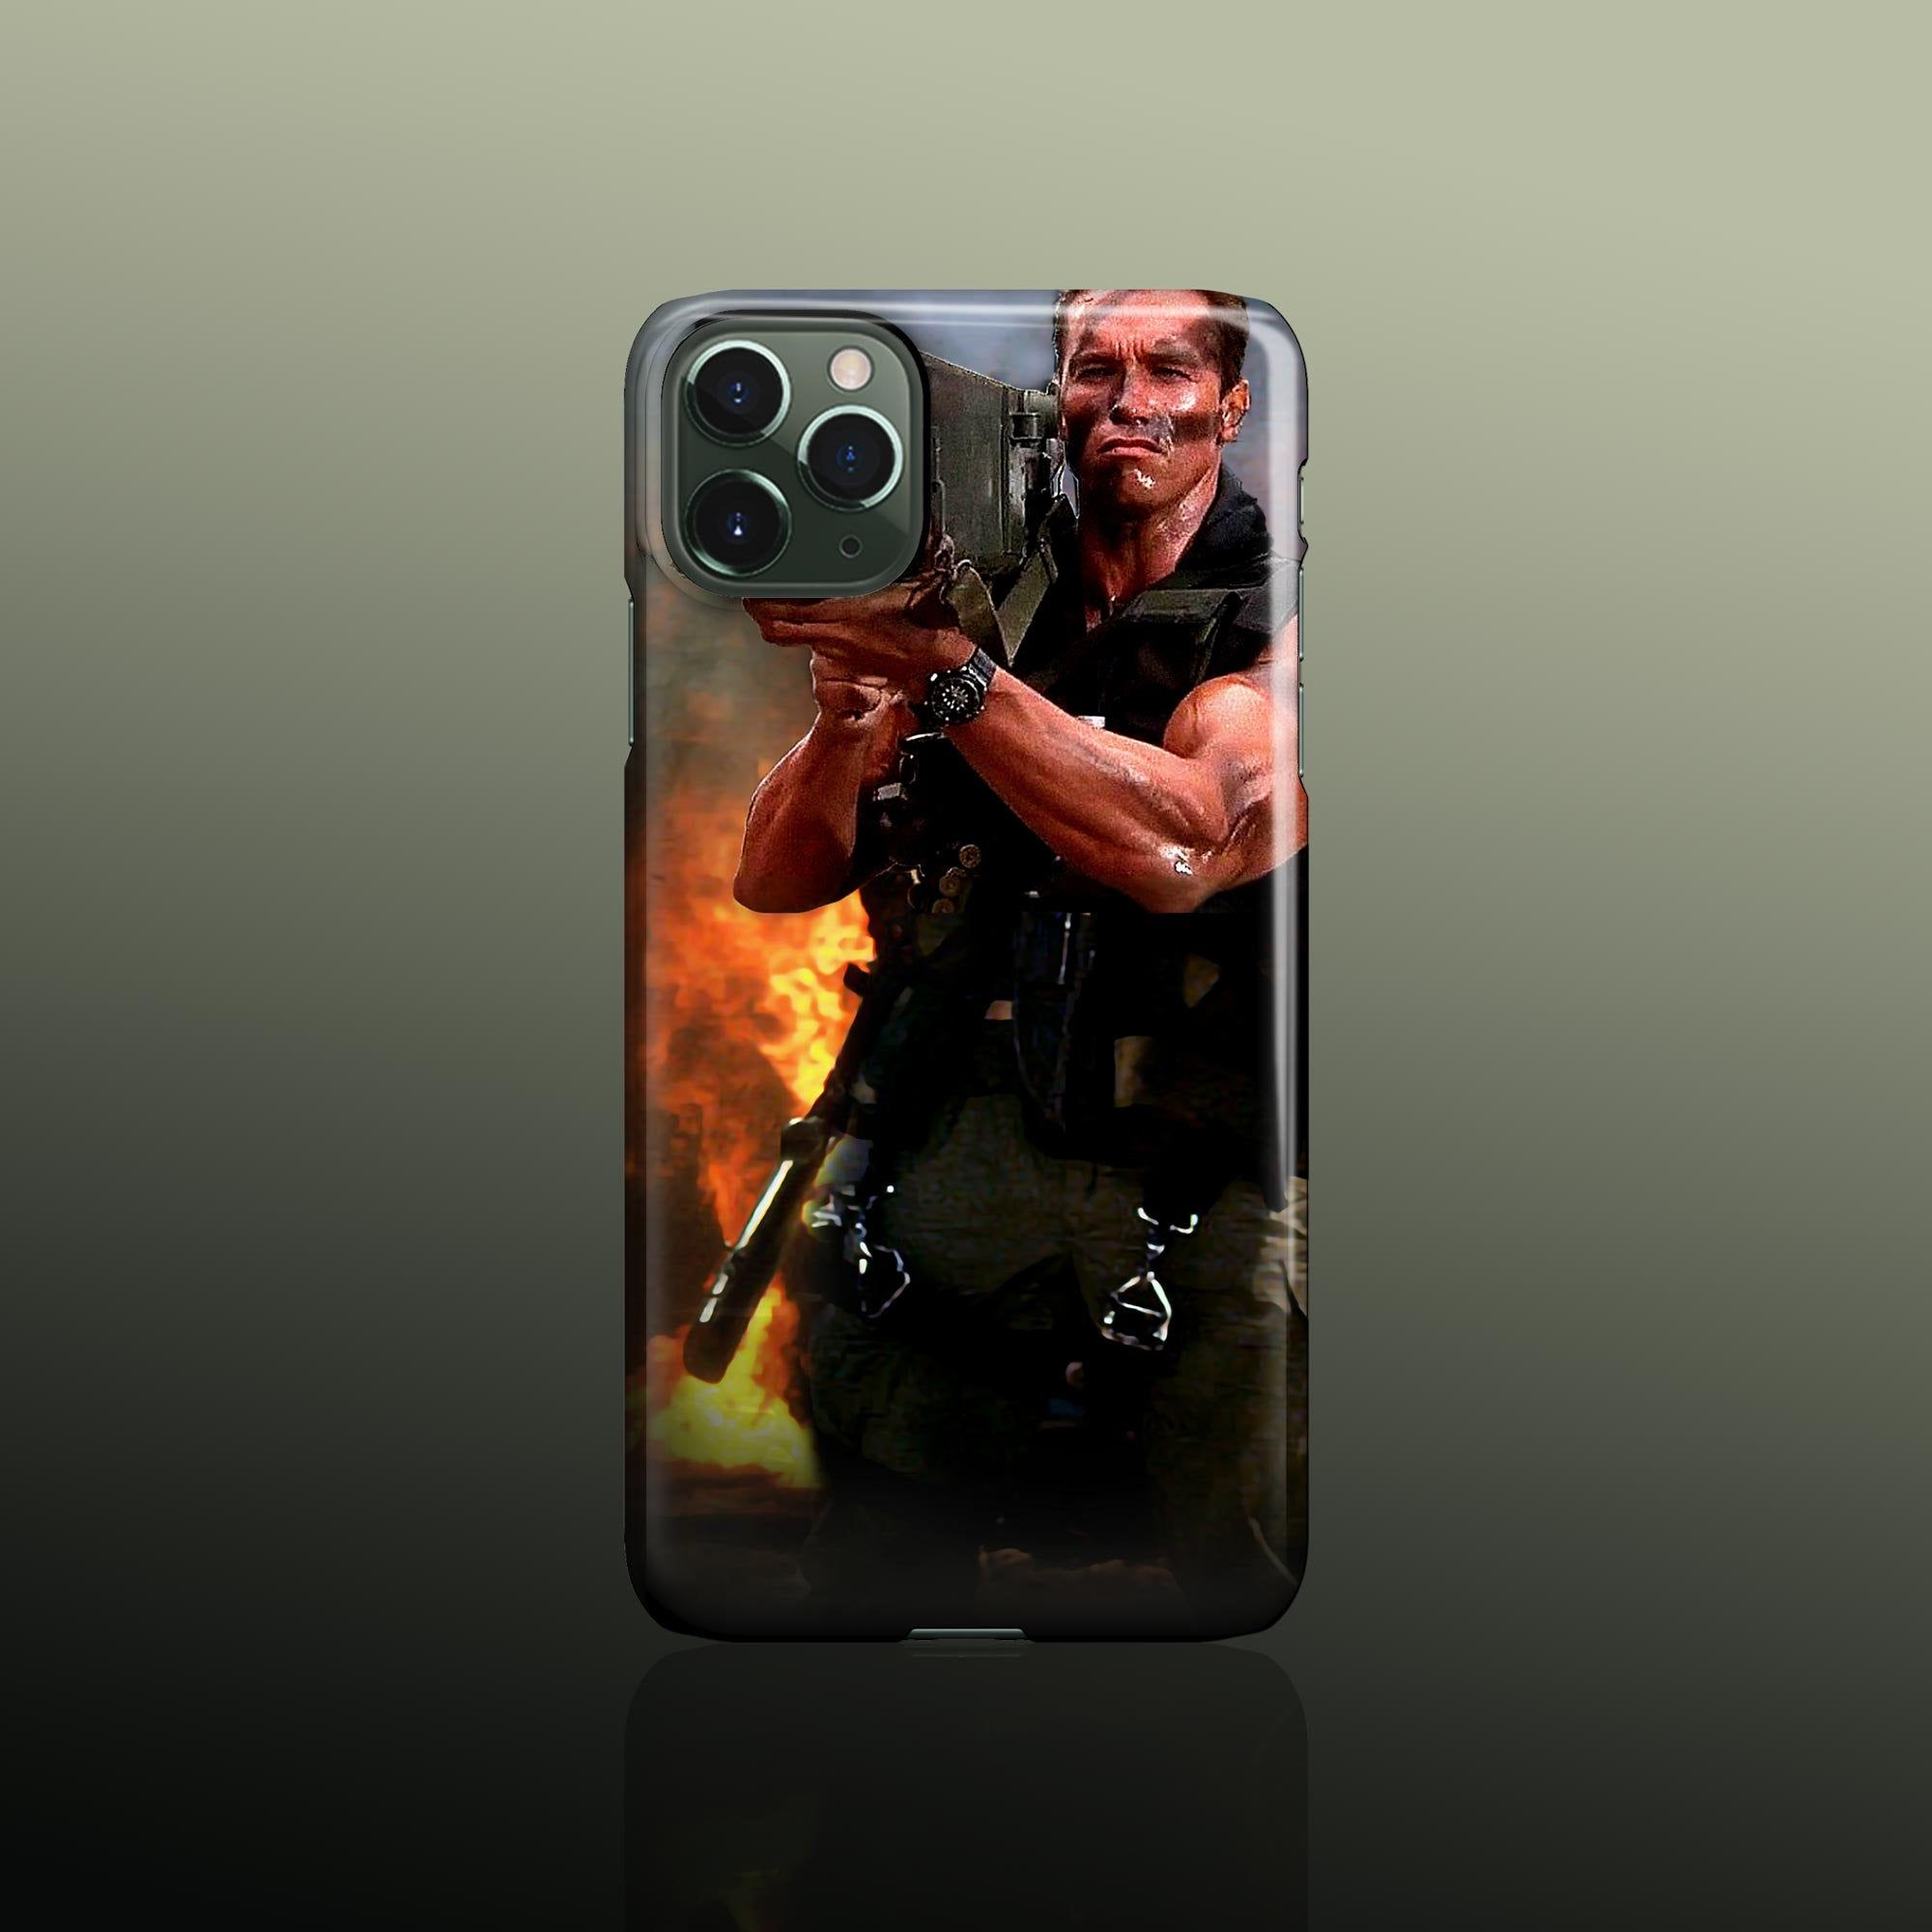 Funny iphone 11 pro max case iphone 11 pro case iphone 11